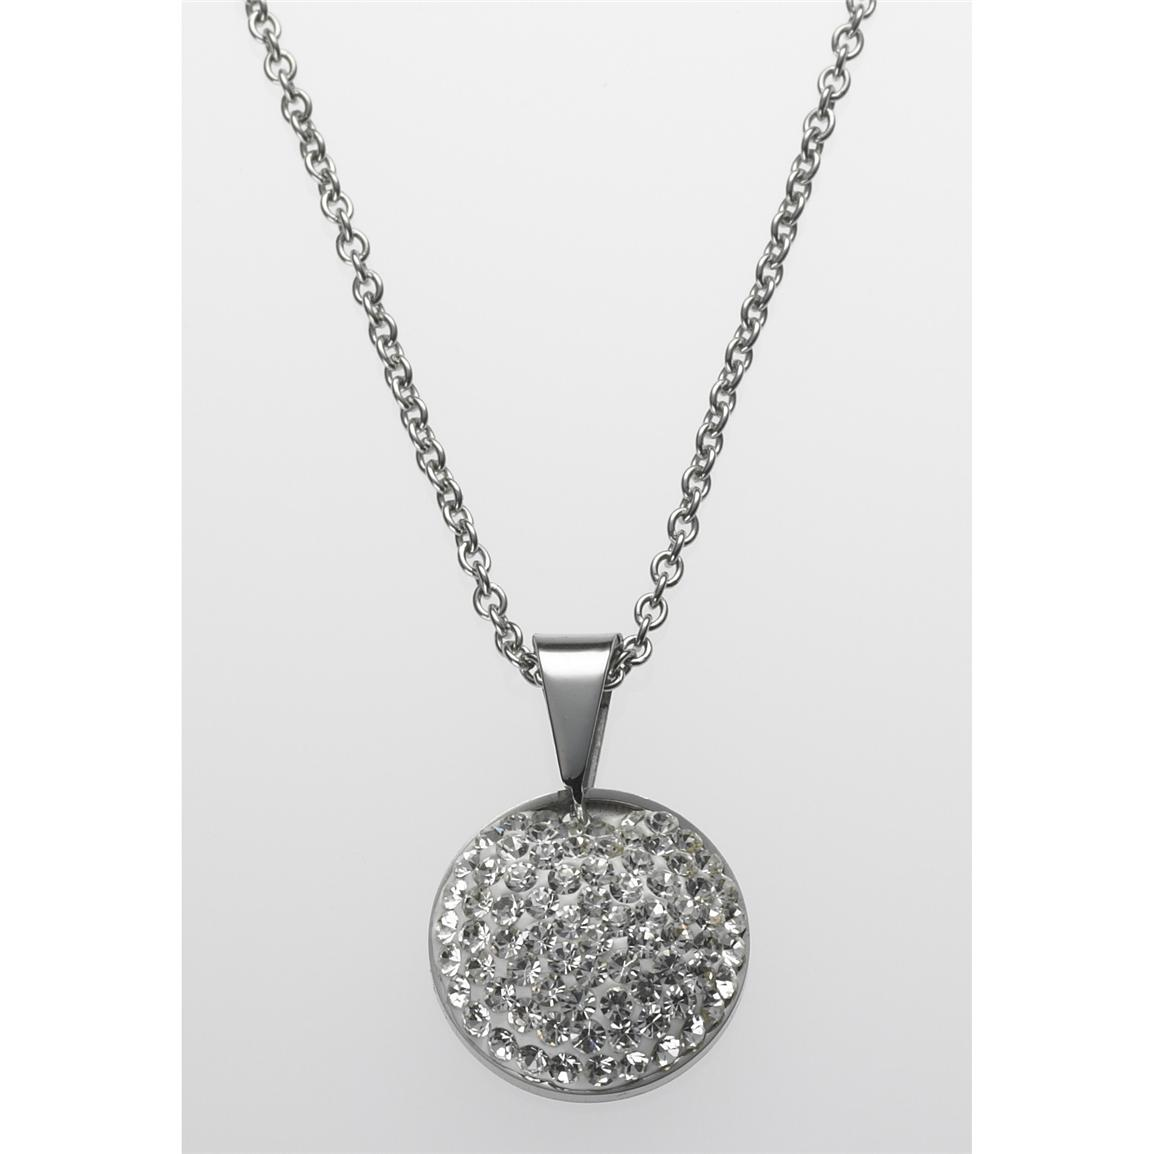 STEELX® Crystal Pave Pendant with 18 inch Chain